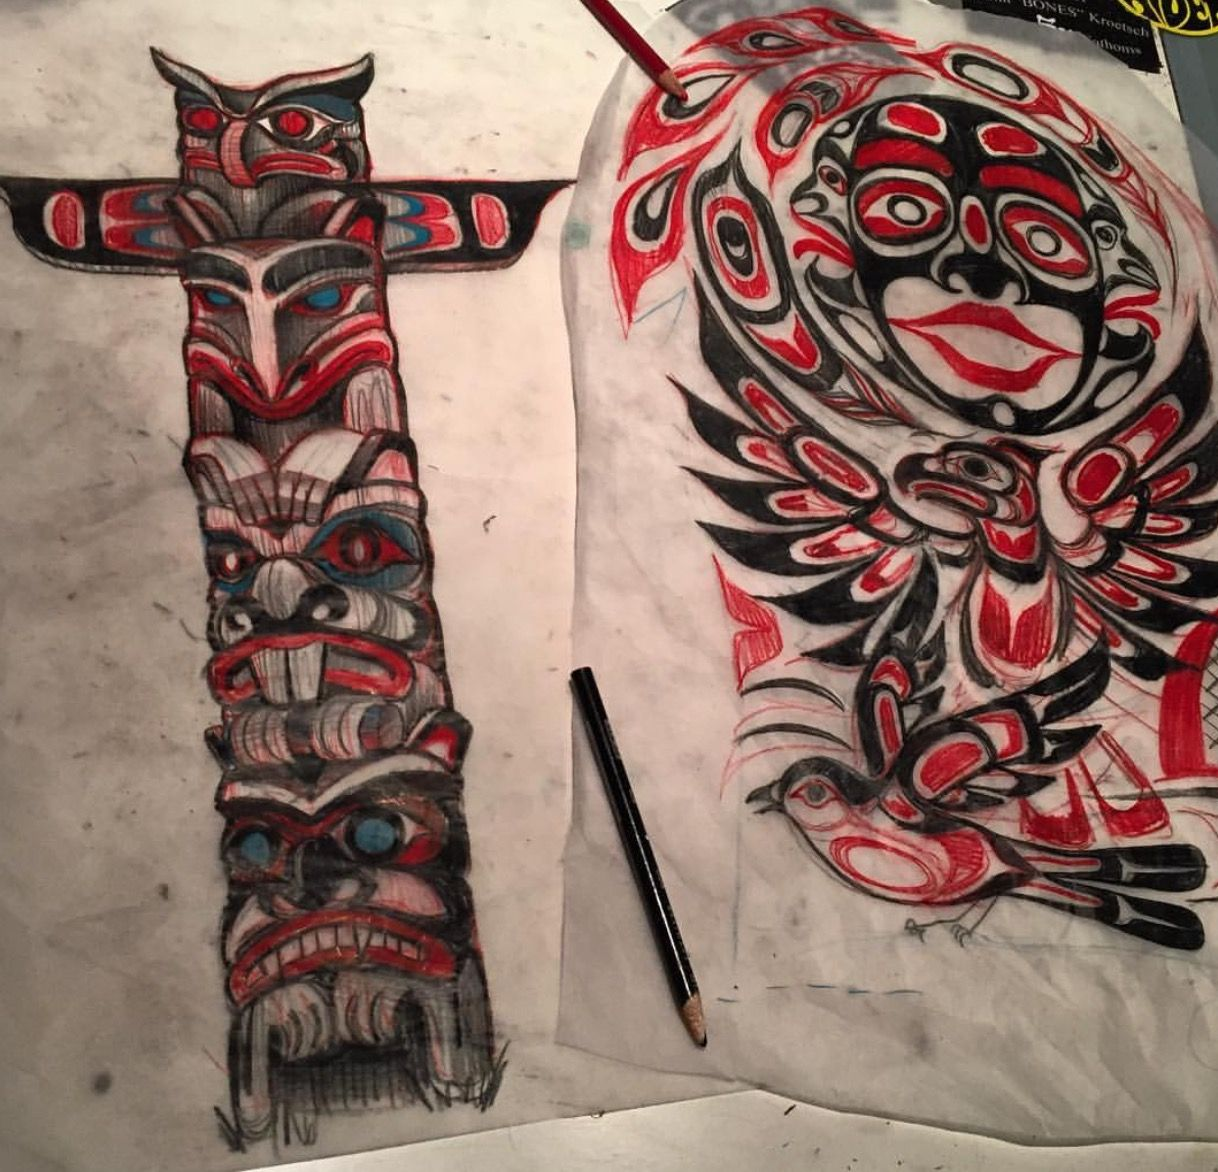 Native Art Body Art Tattoos Native Tattoos Native Art